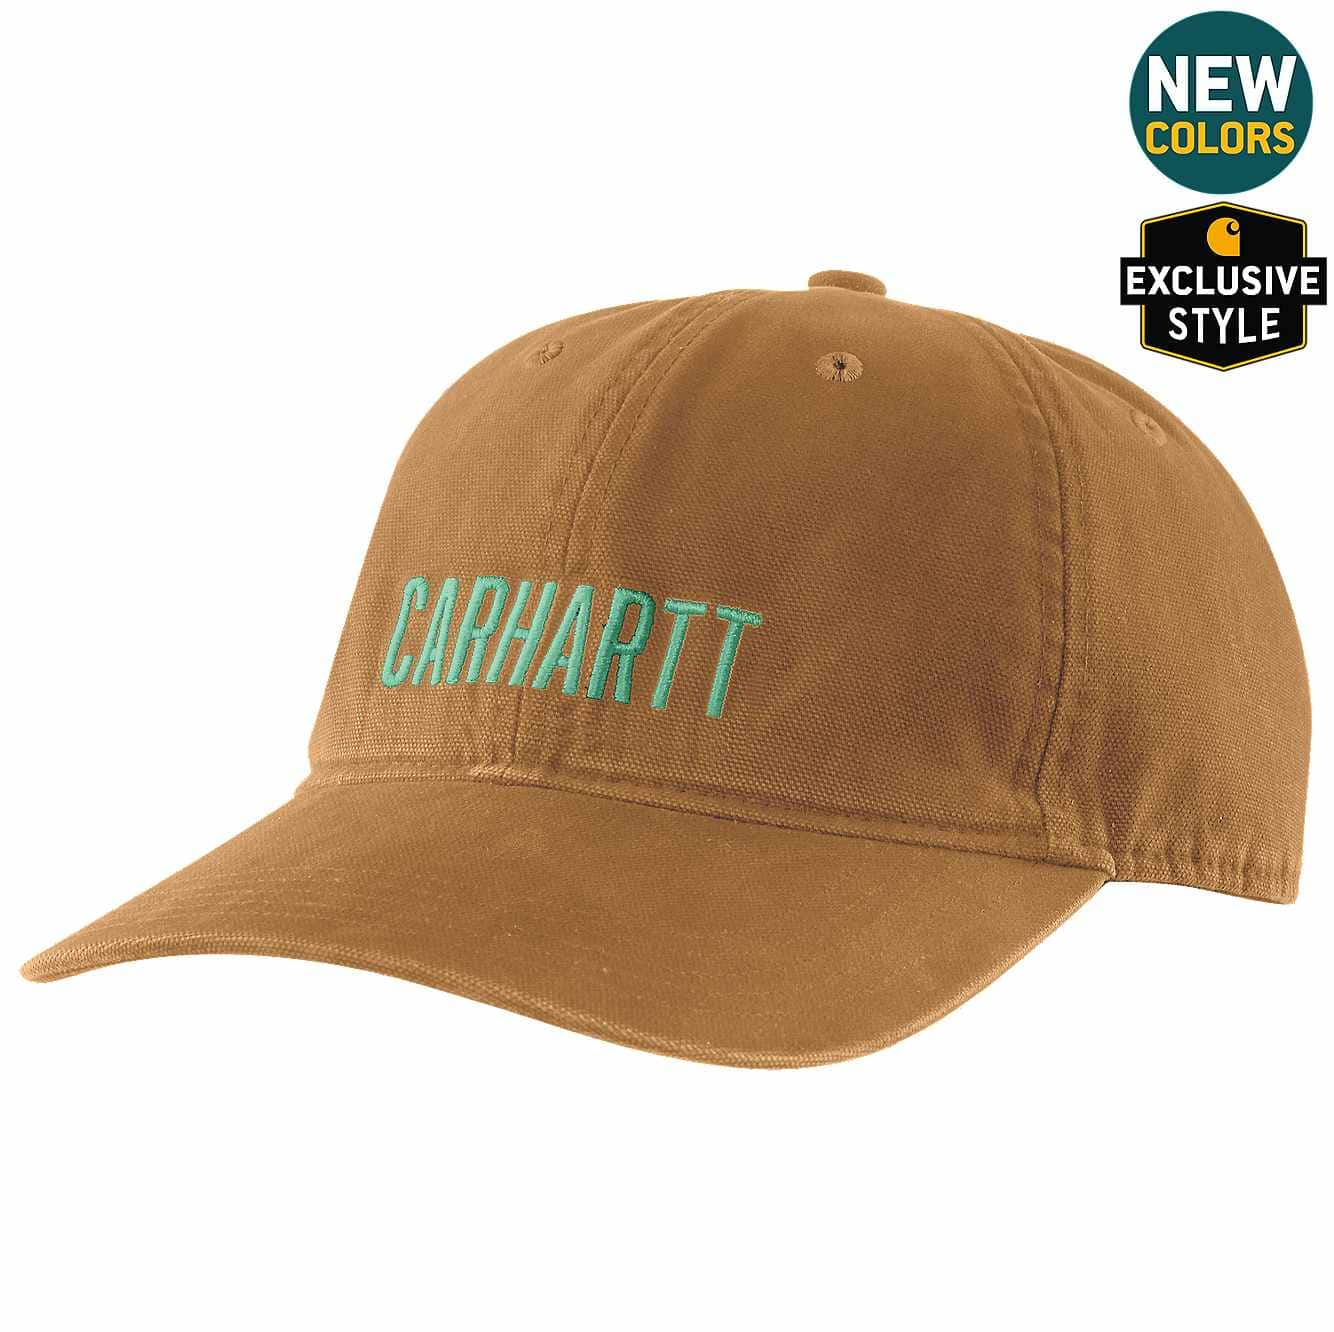 Picture of Canvas Full Back Carhartt Graphic Ball Cap in Carhartt Brown